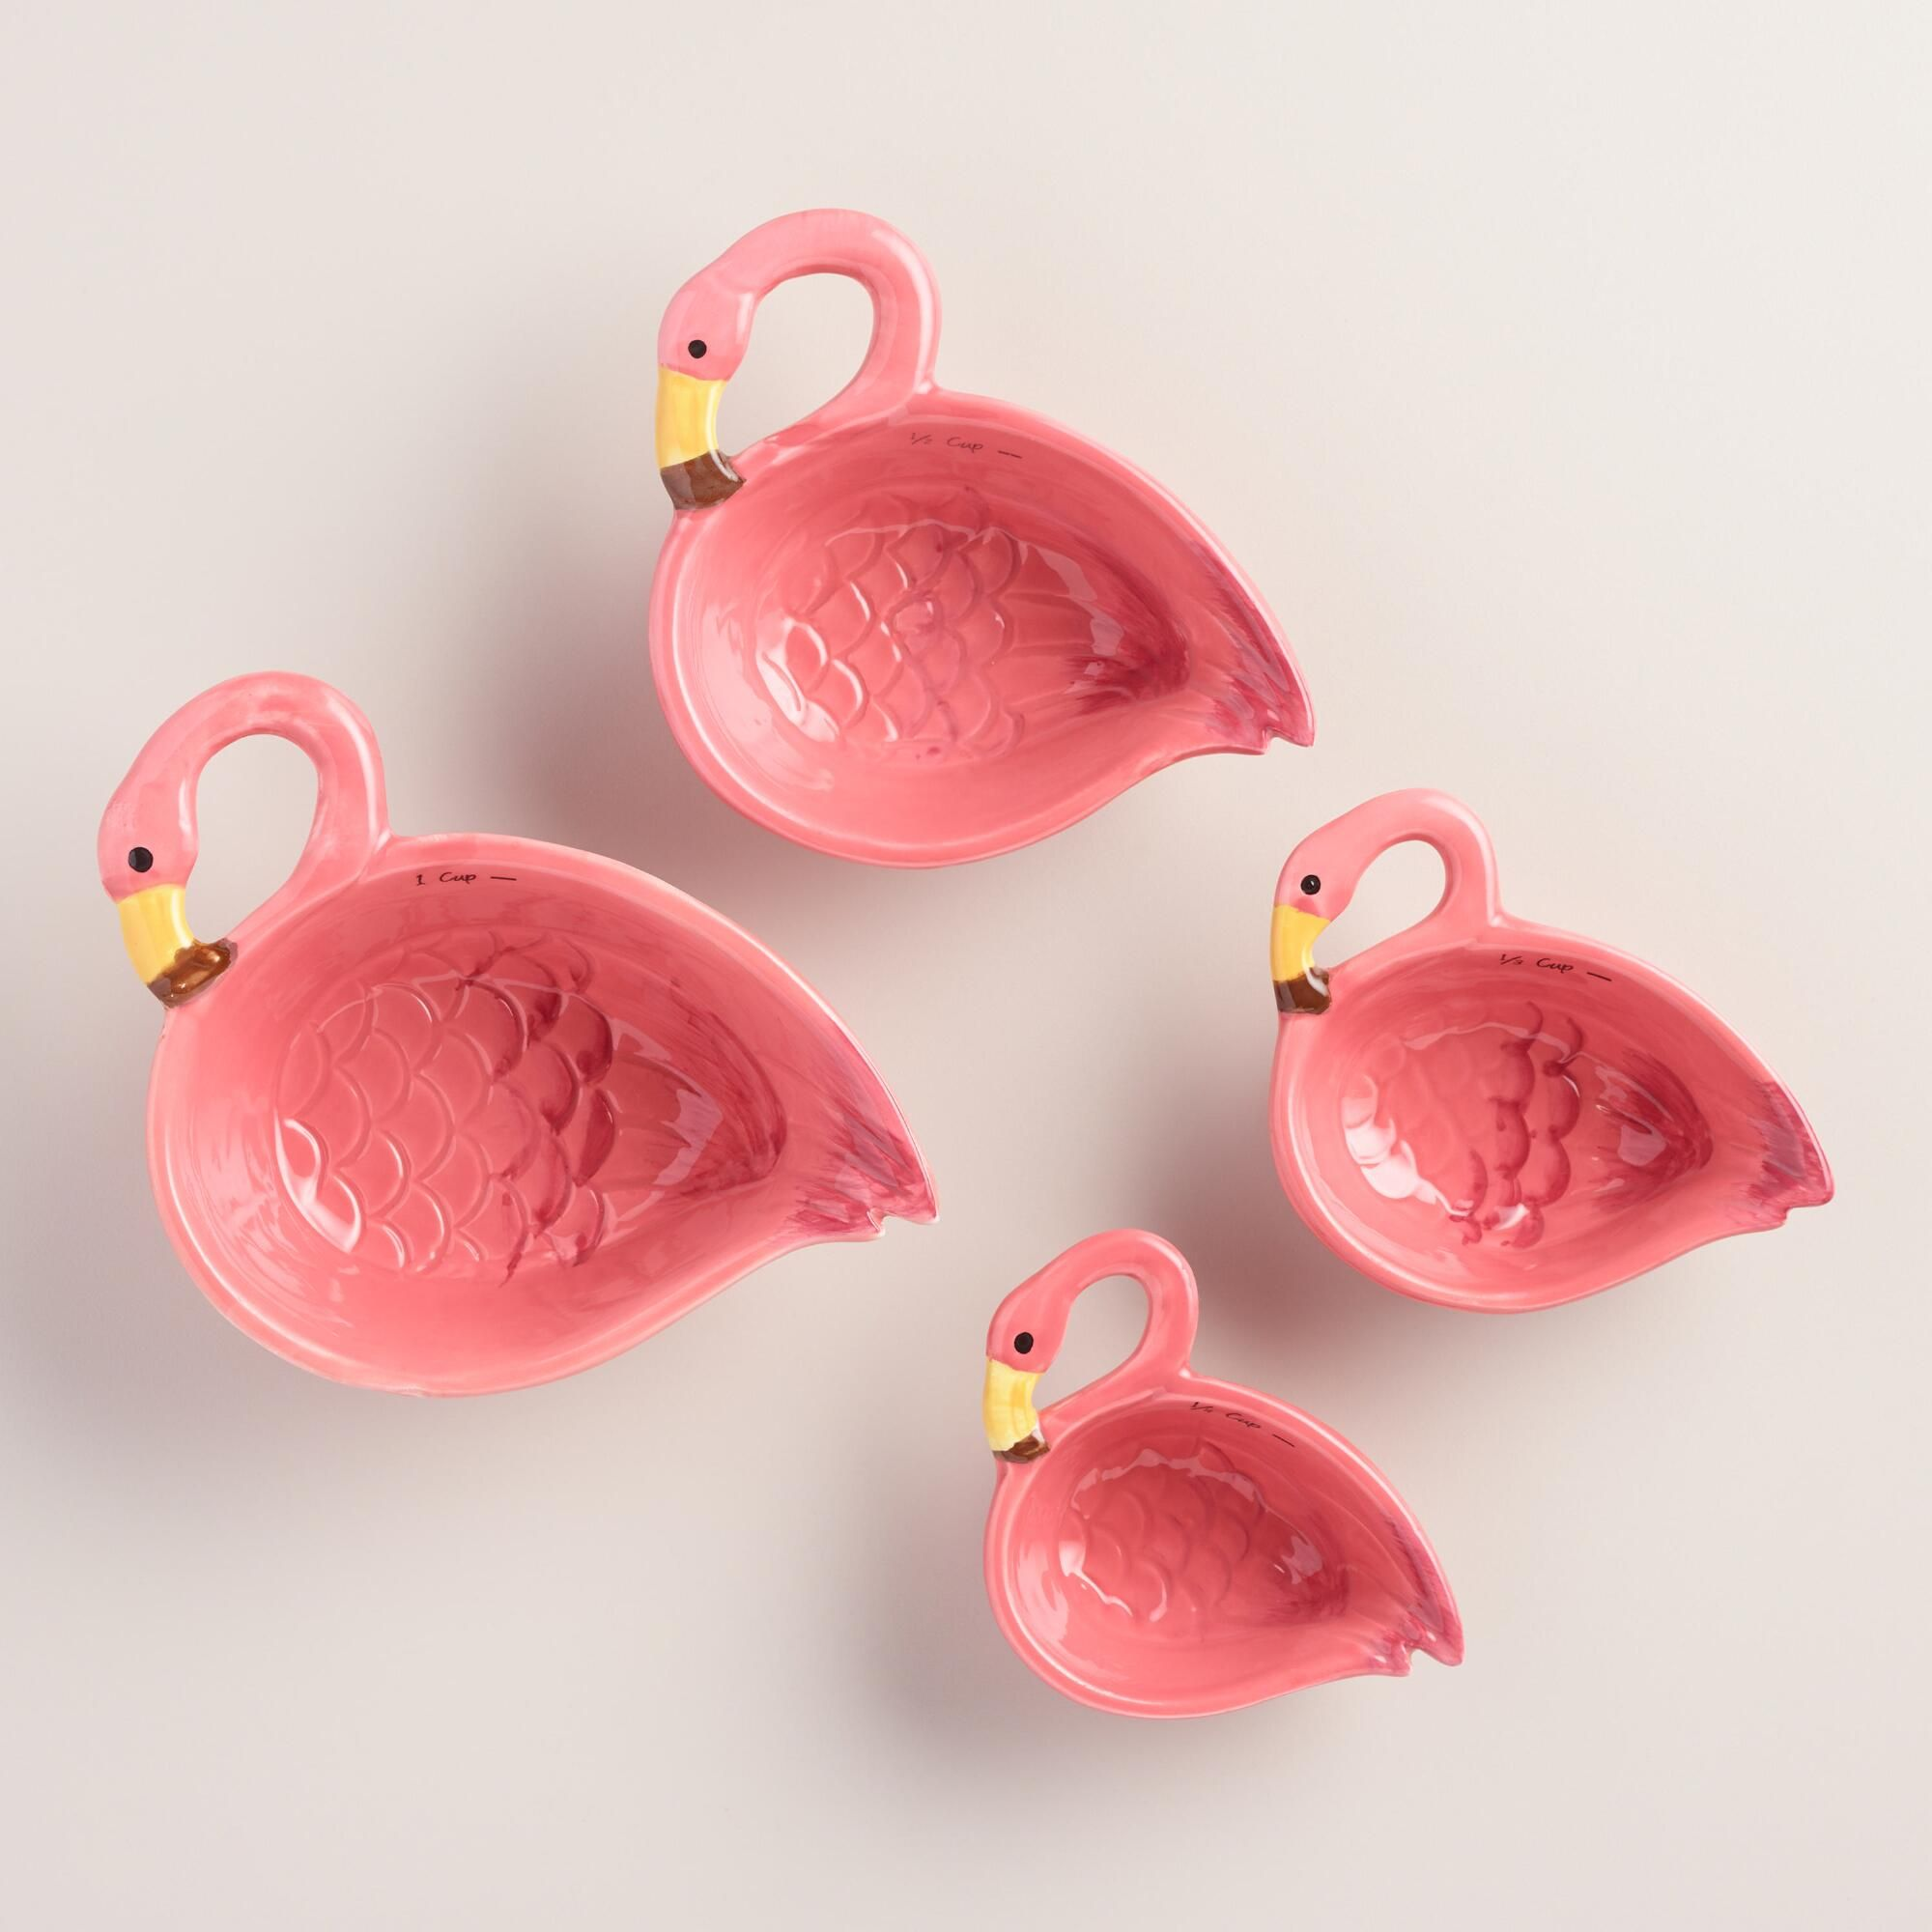 ceramic flamingo measuring cups | easy storage, measuring cup and